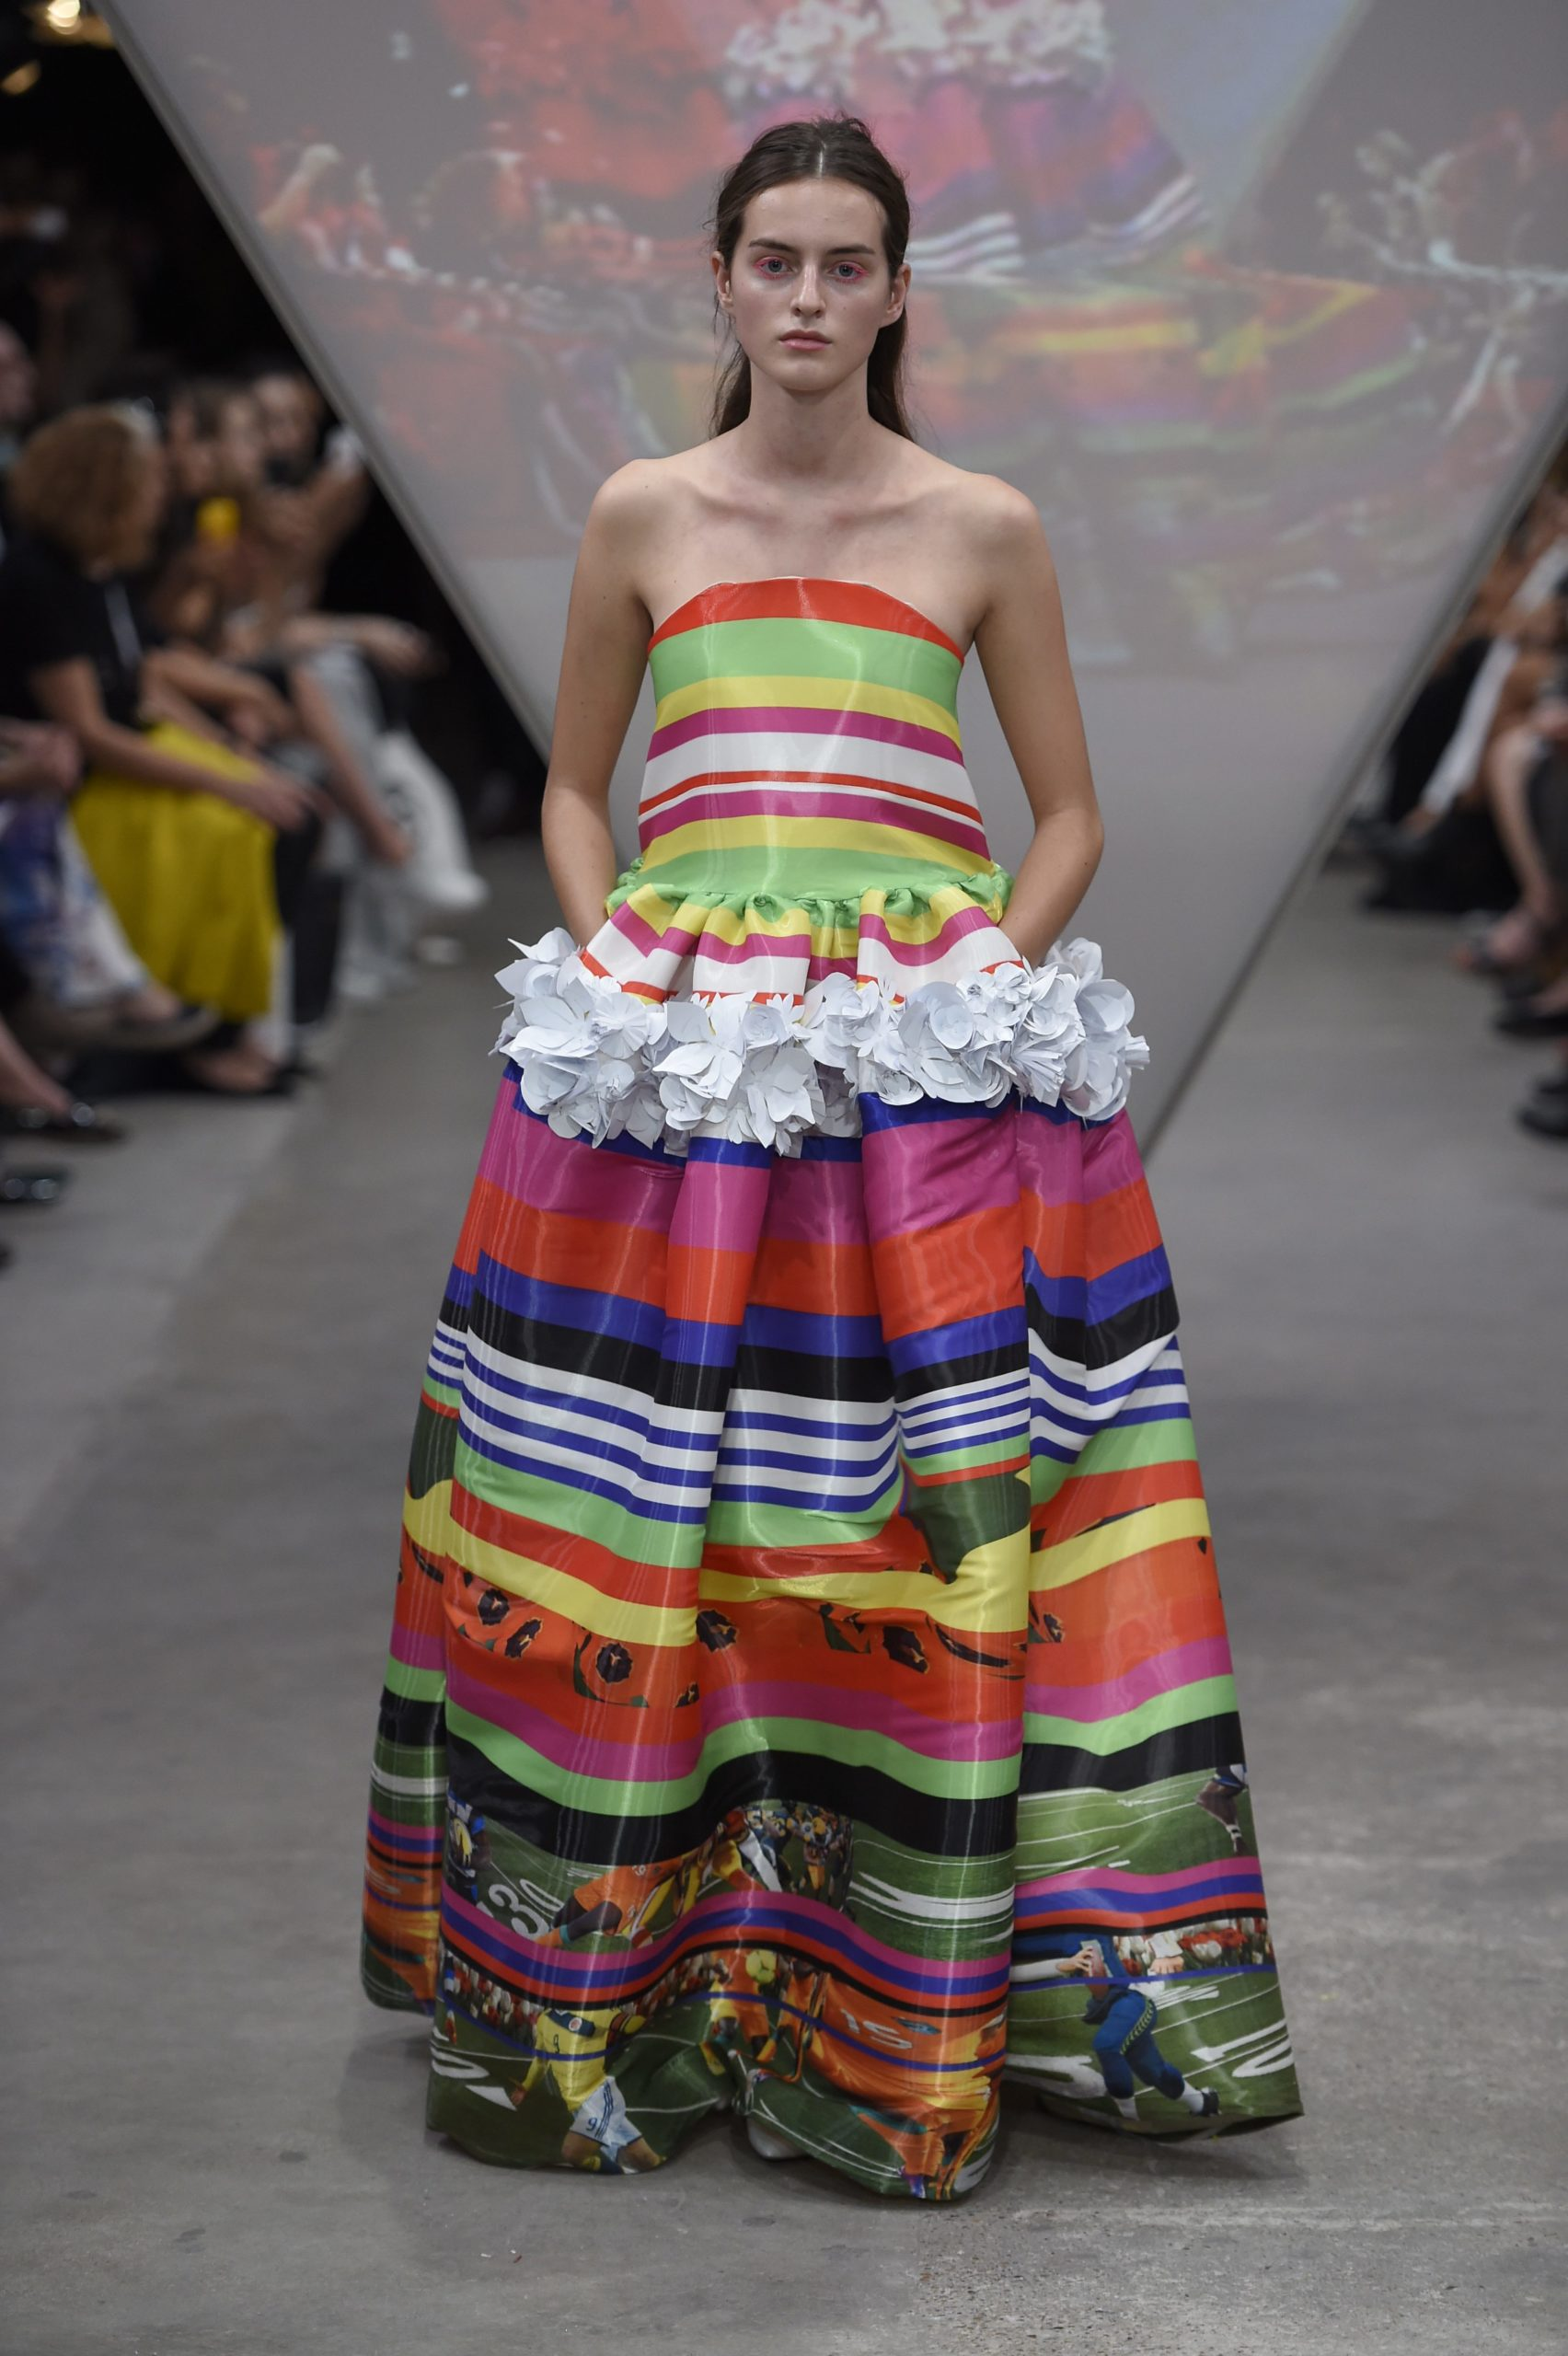 Model walking down catwalk in multi-coloured dress for Fyodor Golan SS15 show, Fashion Innovation Agency